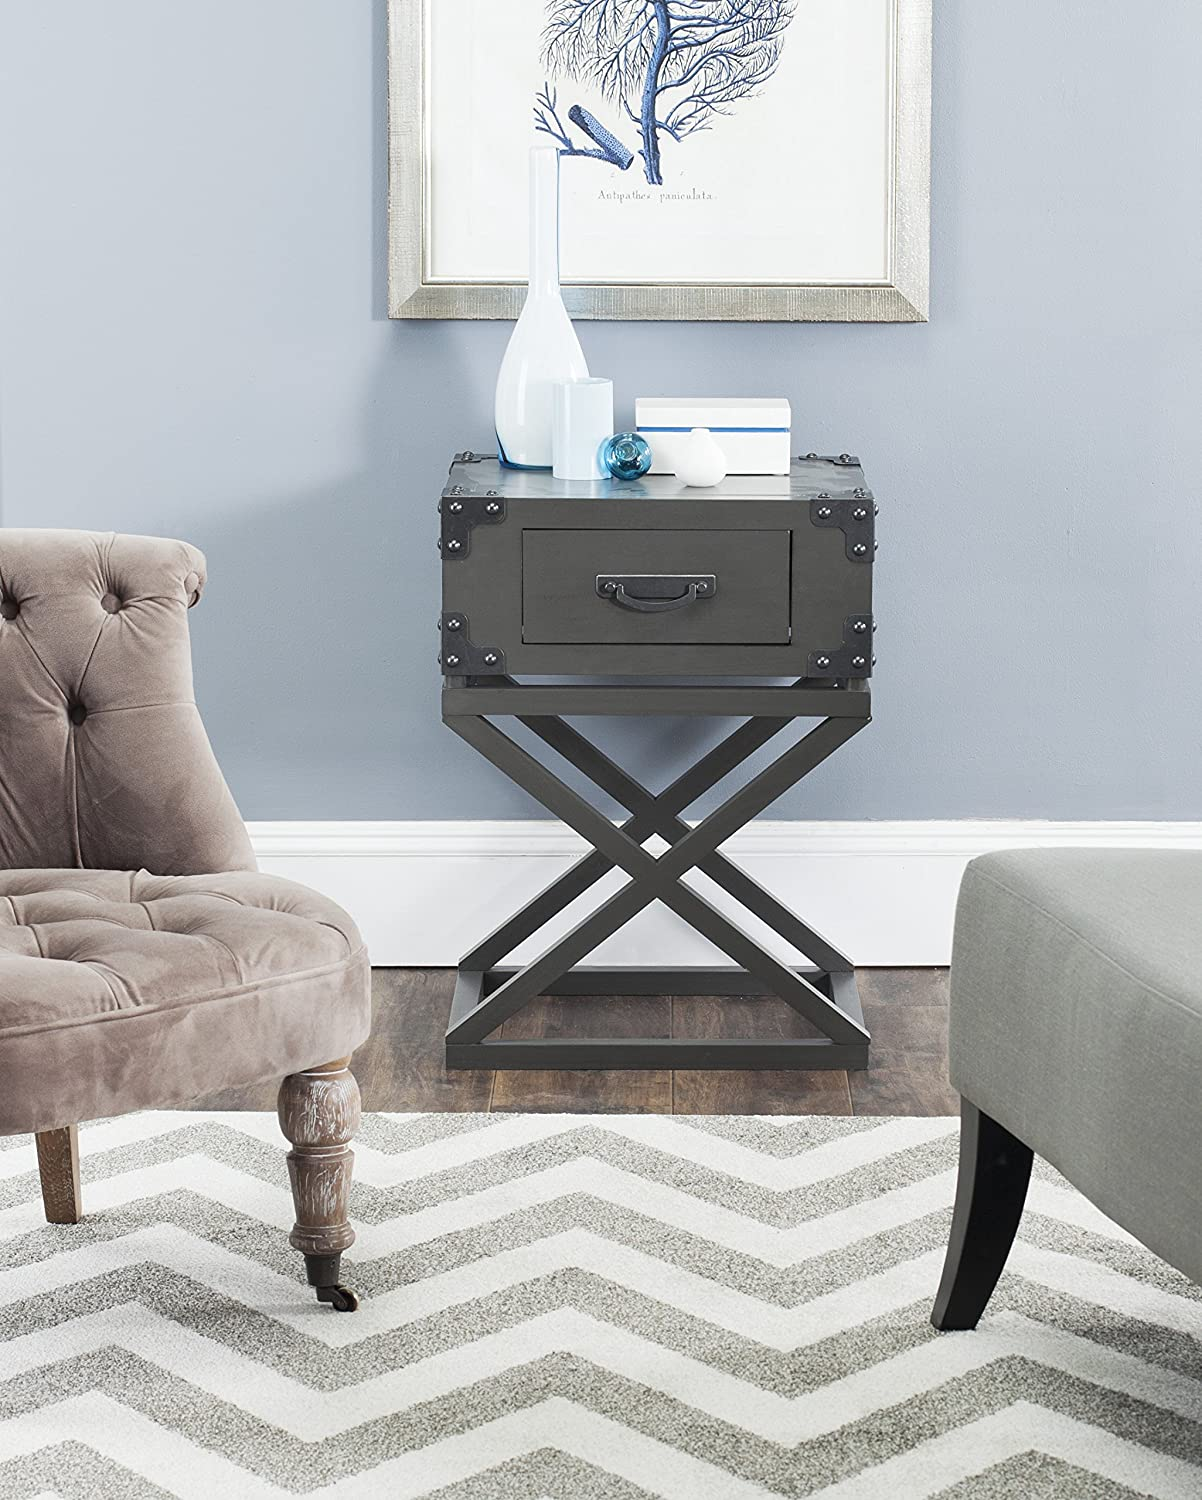 Safavieh American Homes Collection Dunstan Accent Table, Grey